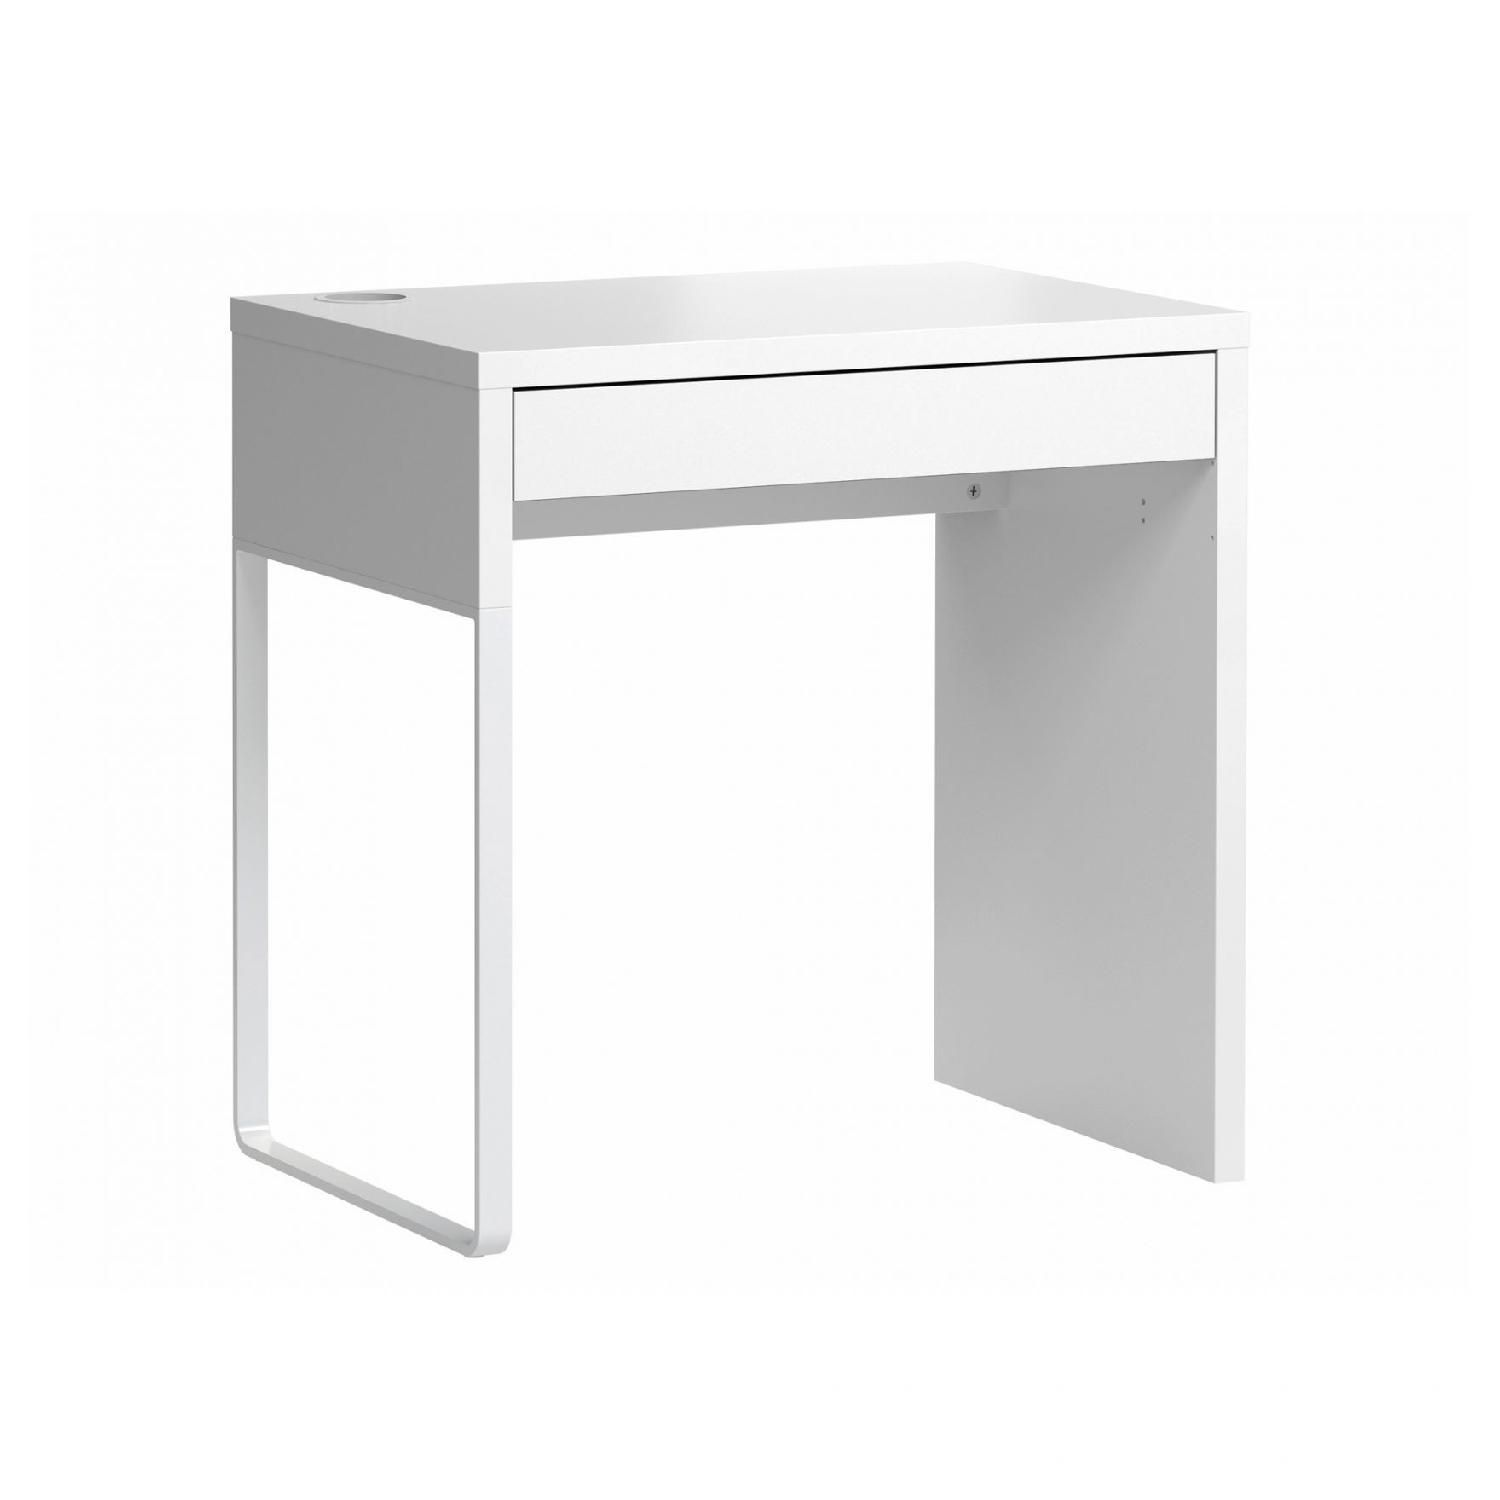 Ikea Micke Desk In White Aptdeco Ikea White Desk Ikea Micke Desk Ikea Small Desk